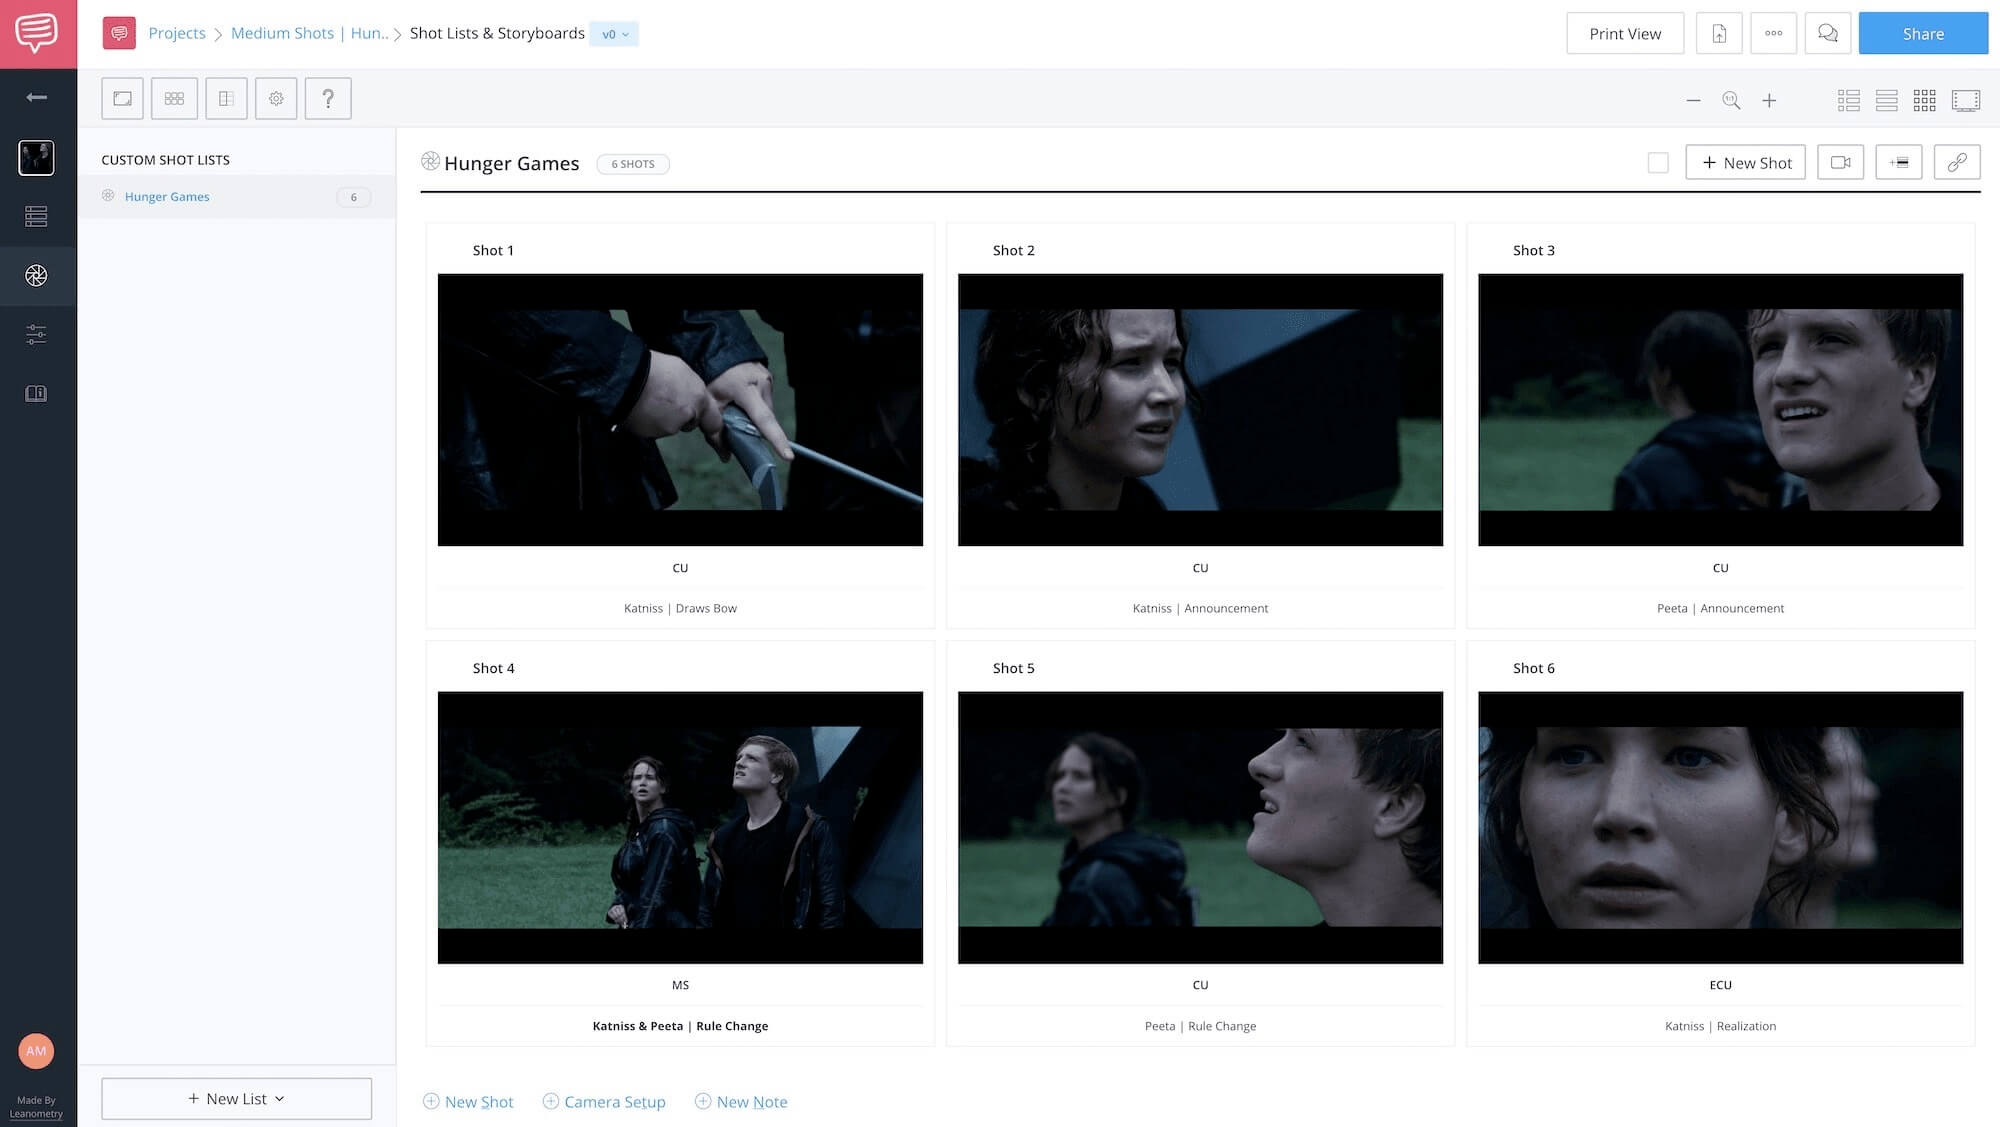 Medium Shot Examples - The Hunger Games - StudioBinder Online Shot Listing Software